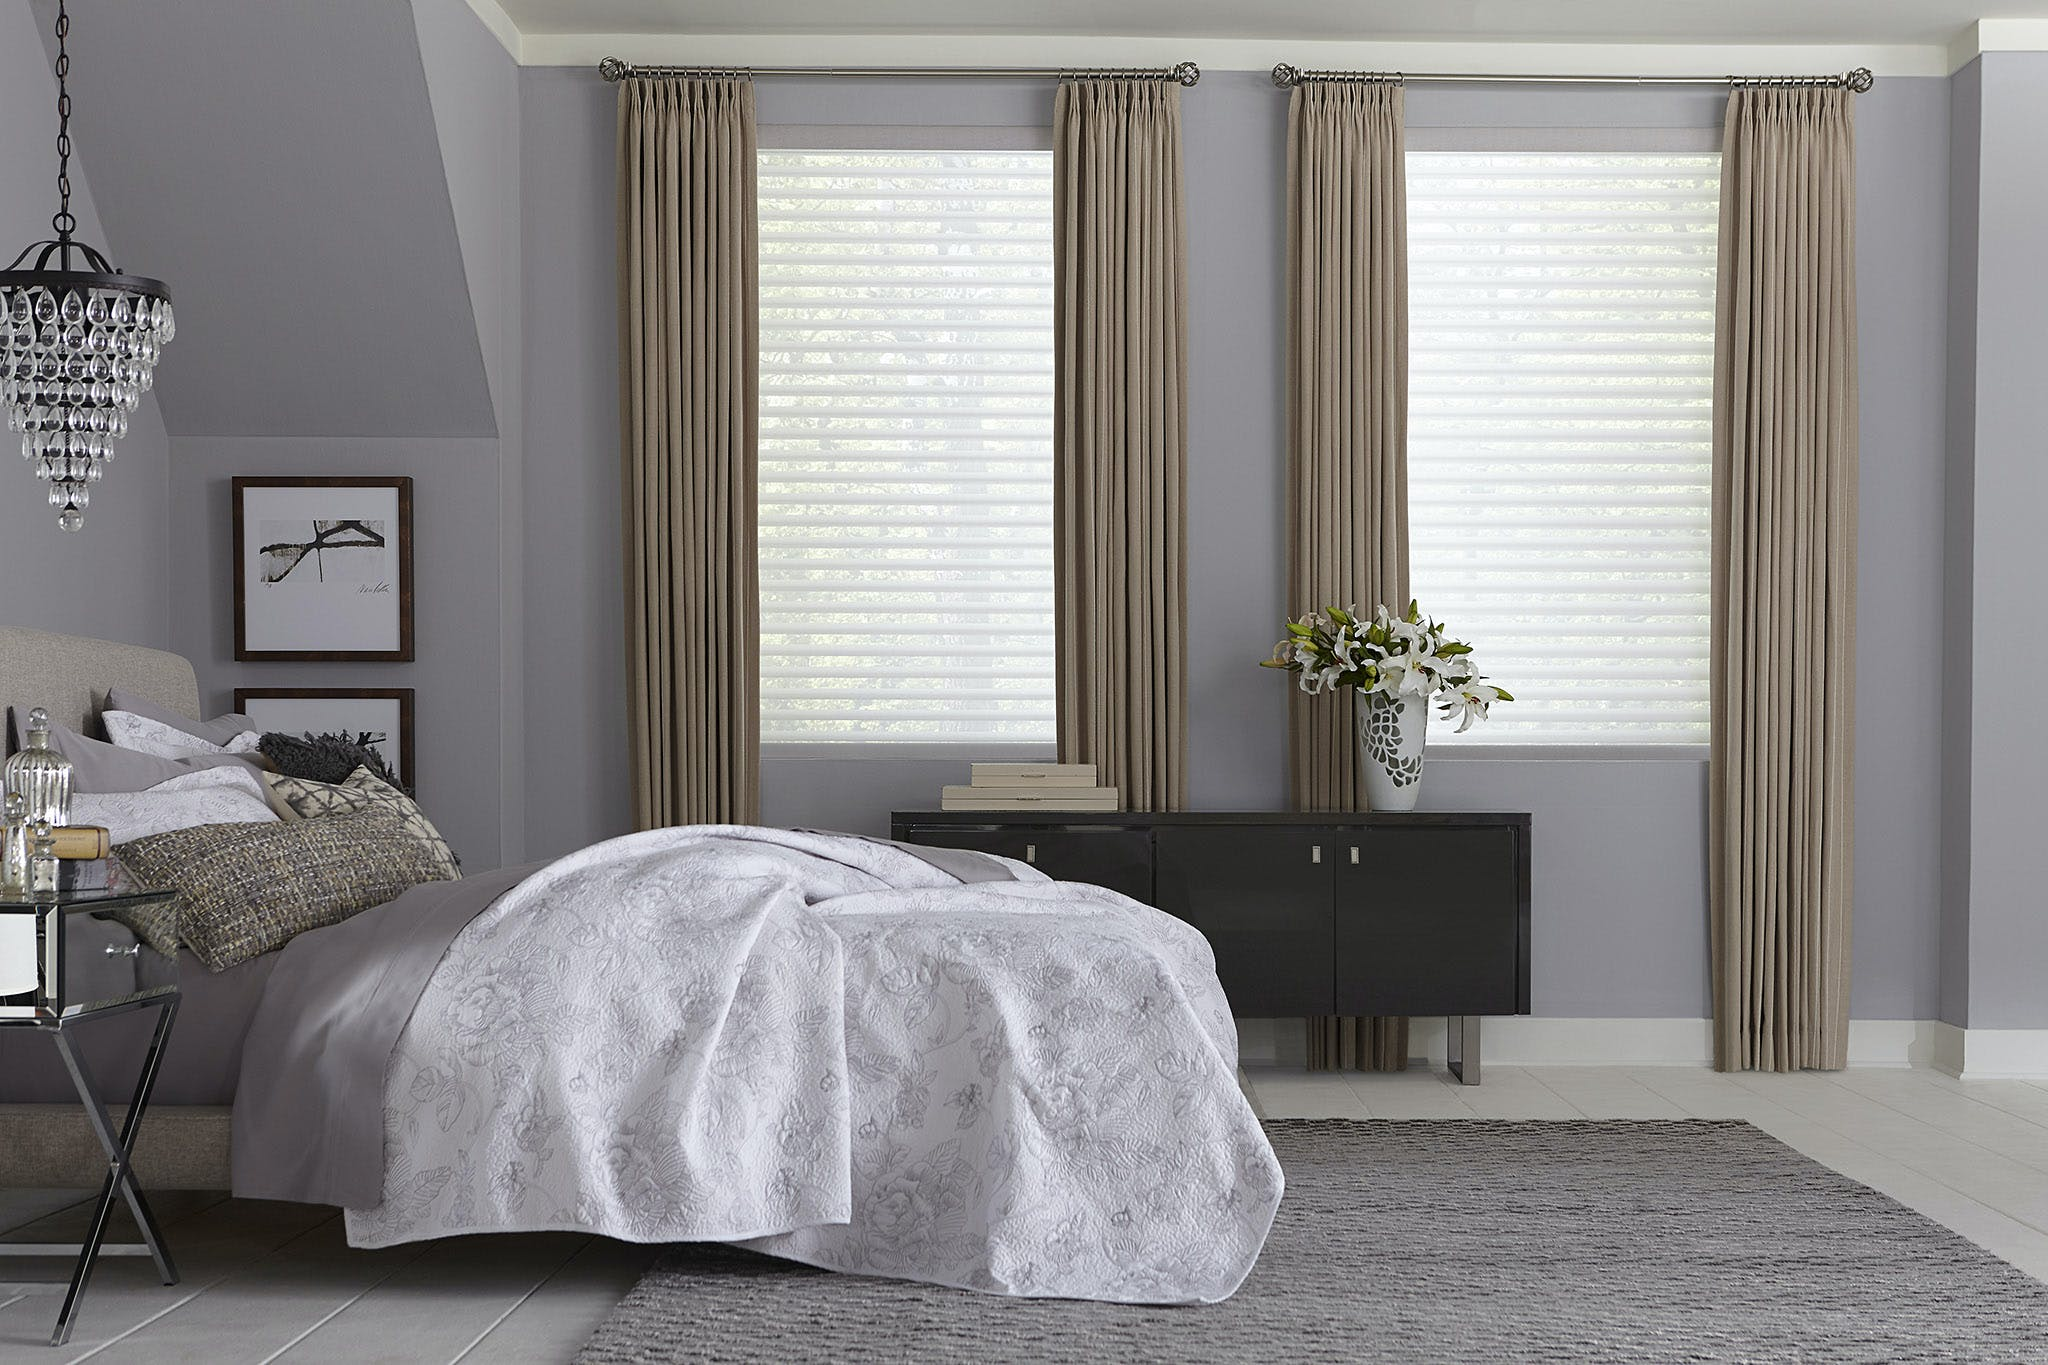 Traditional bedroom with blackout curtains draped over light filtering sheer shades.